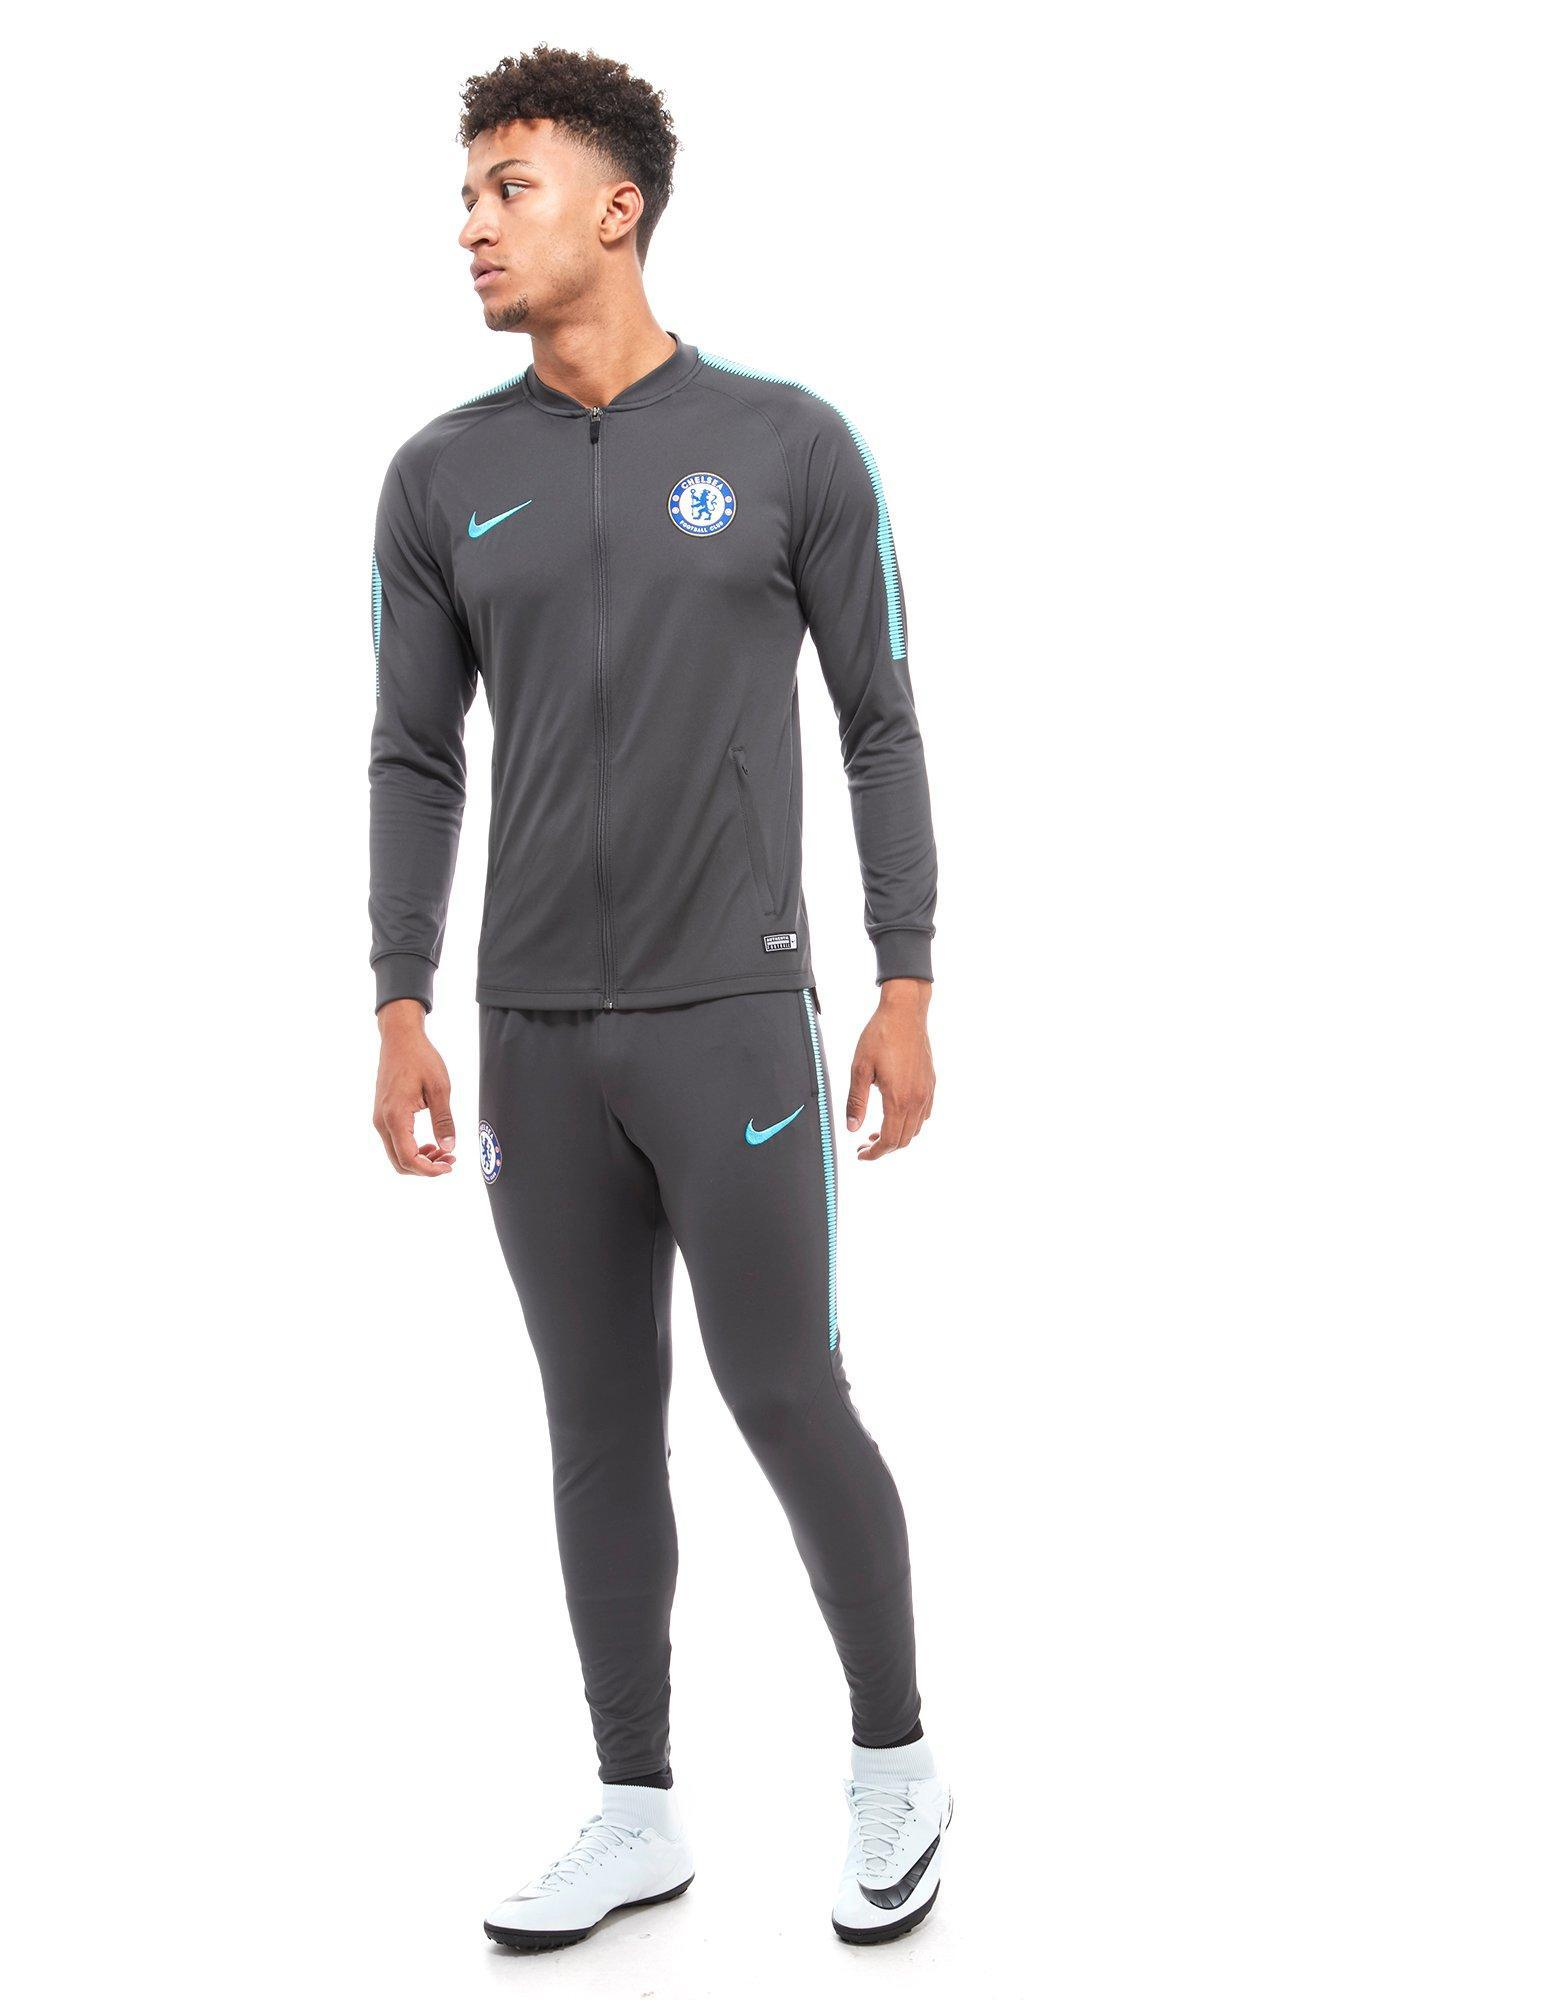 Nike Synthetic Chelsea Fc 2017 Squad Pants in Grey (Grey) for Men